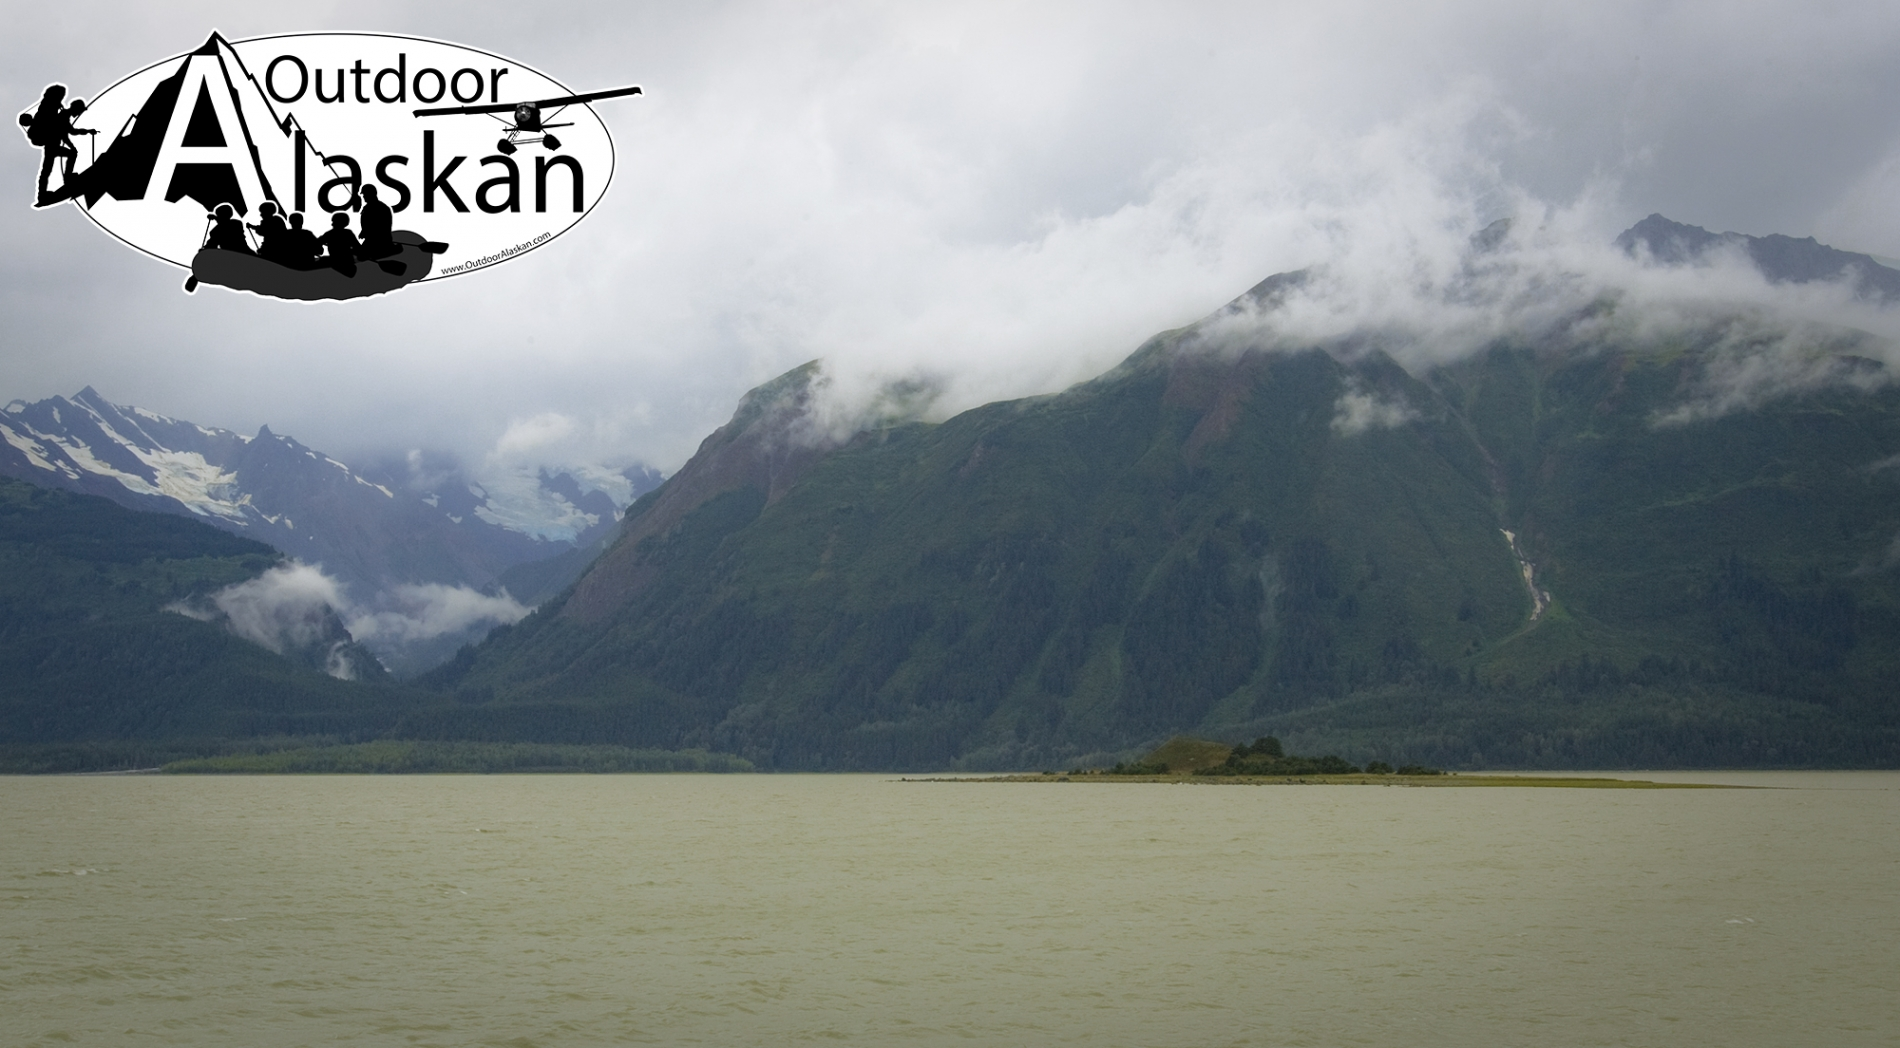 Pyramid Island sits in the middle of where Chilkat Inlet and Chilkat River meet. Pyramid Harbor is on the distant shore.